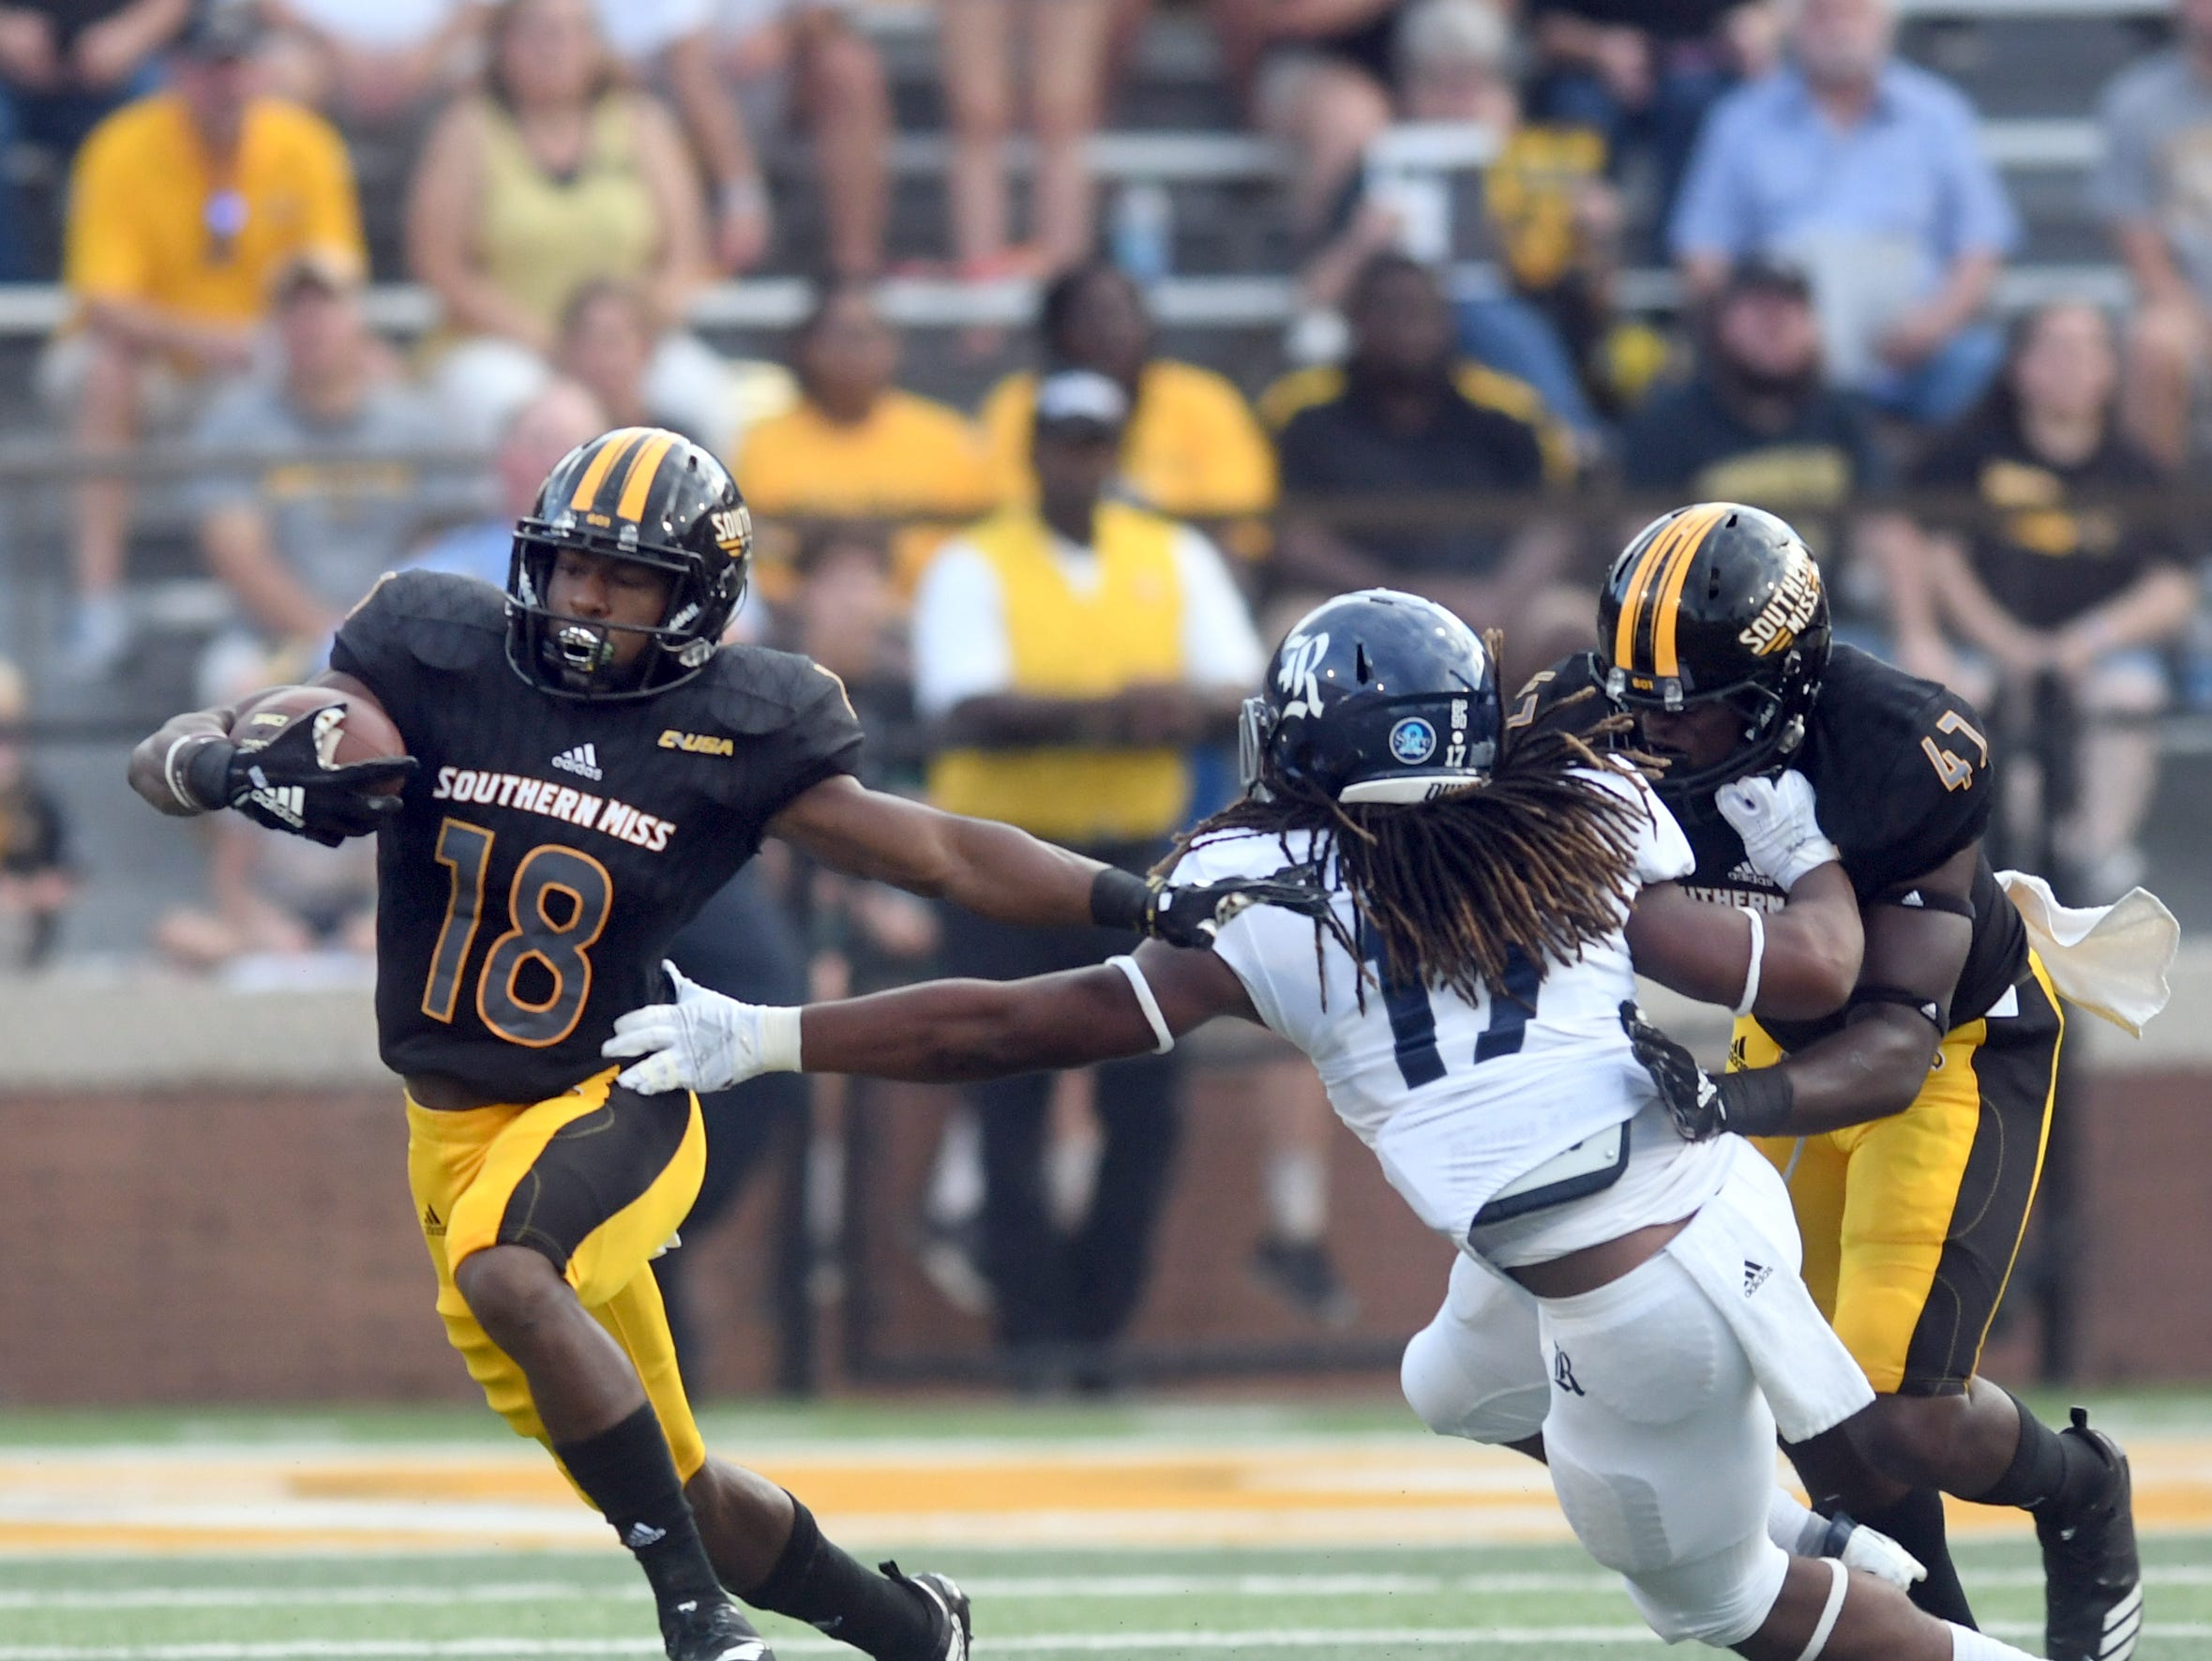 Southern Miss wide receiver De'Michael Harries runs the ball down the field in a game against Rice at M.M. Roberts Stadium on Saturday, September 22, 2018.